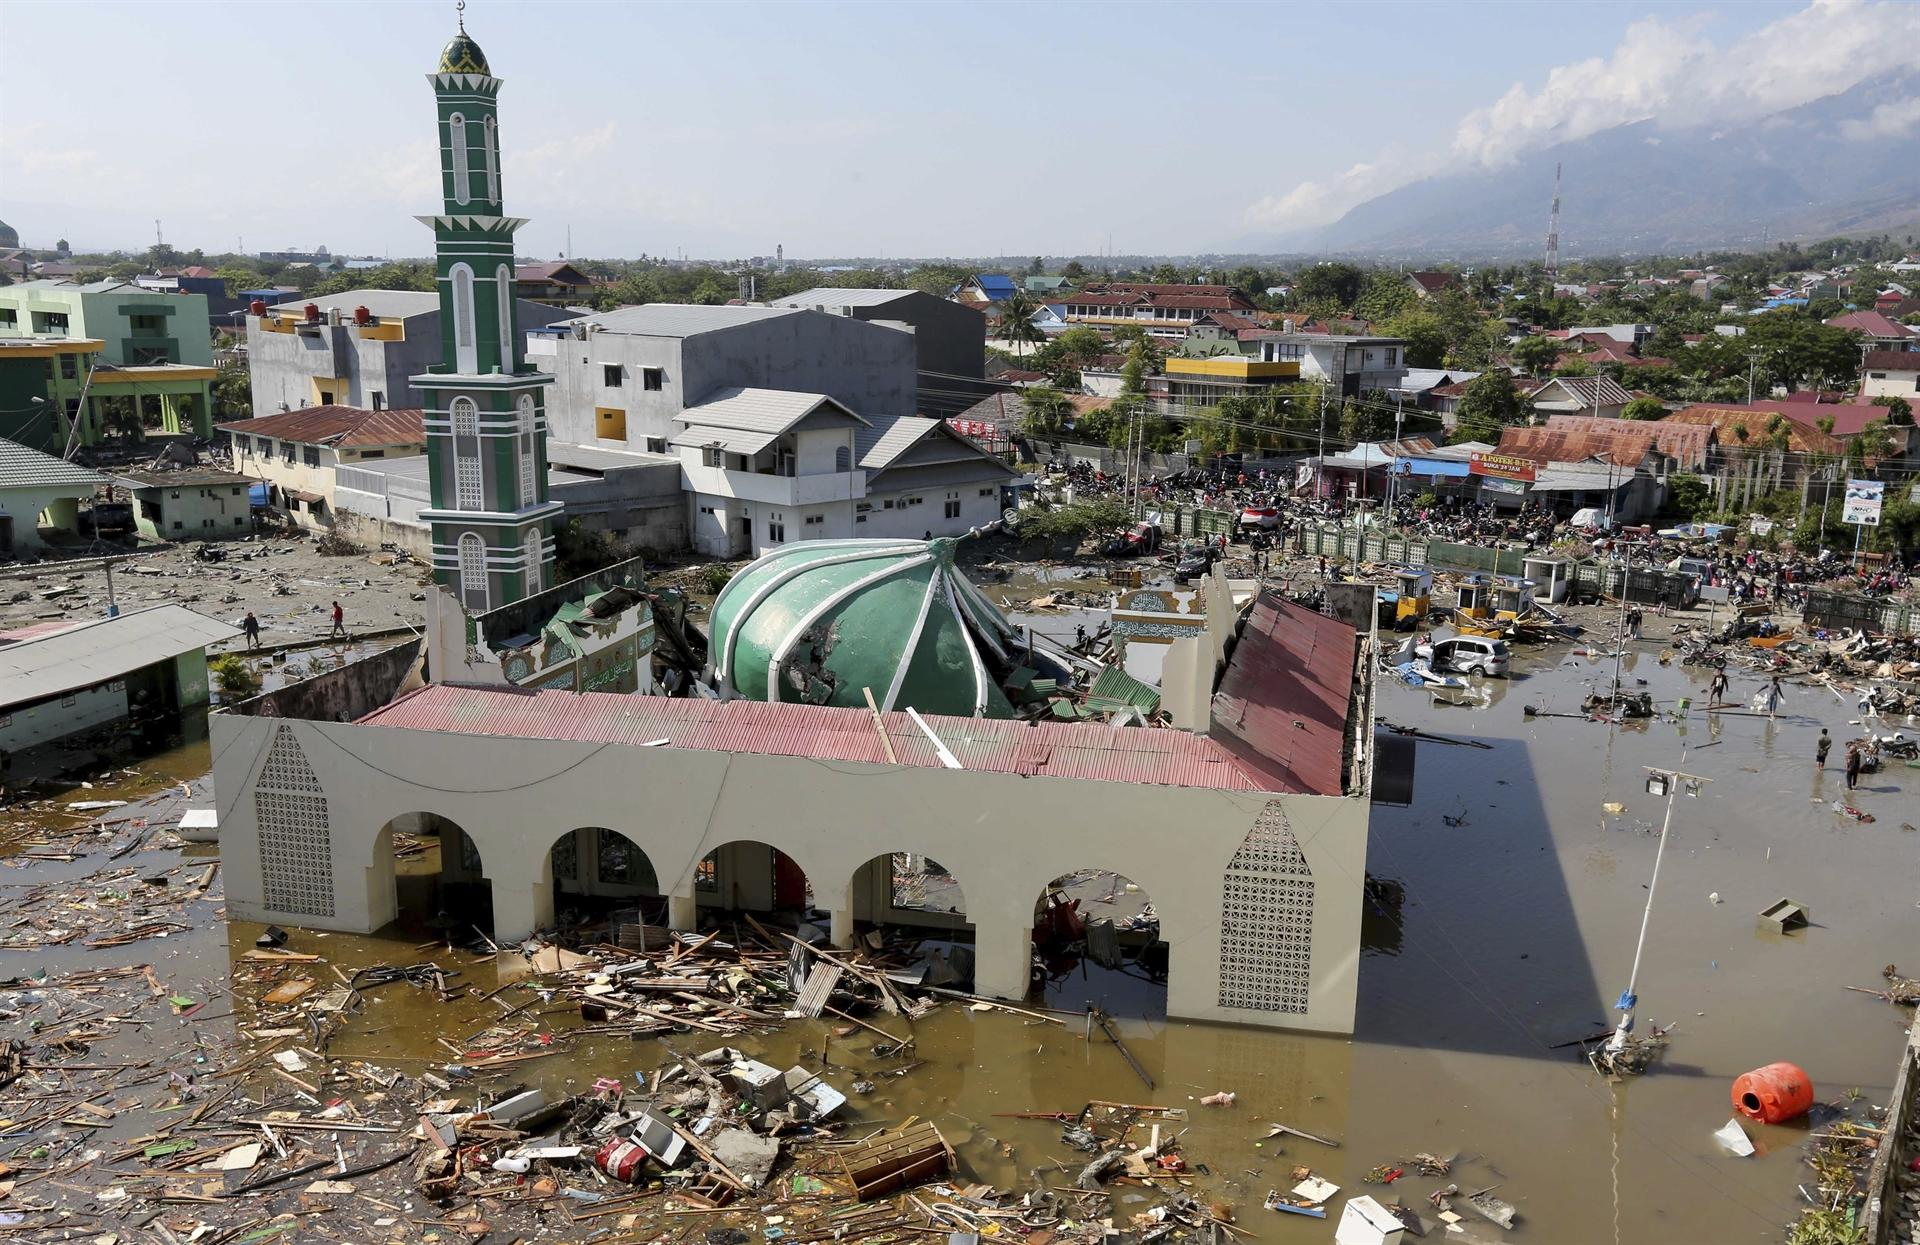 As death rises to 281, India stands by tsunami-hit Indonesia, says Swaraj